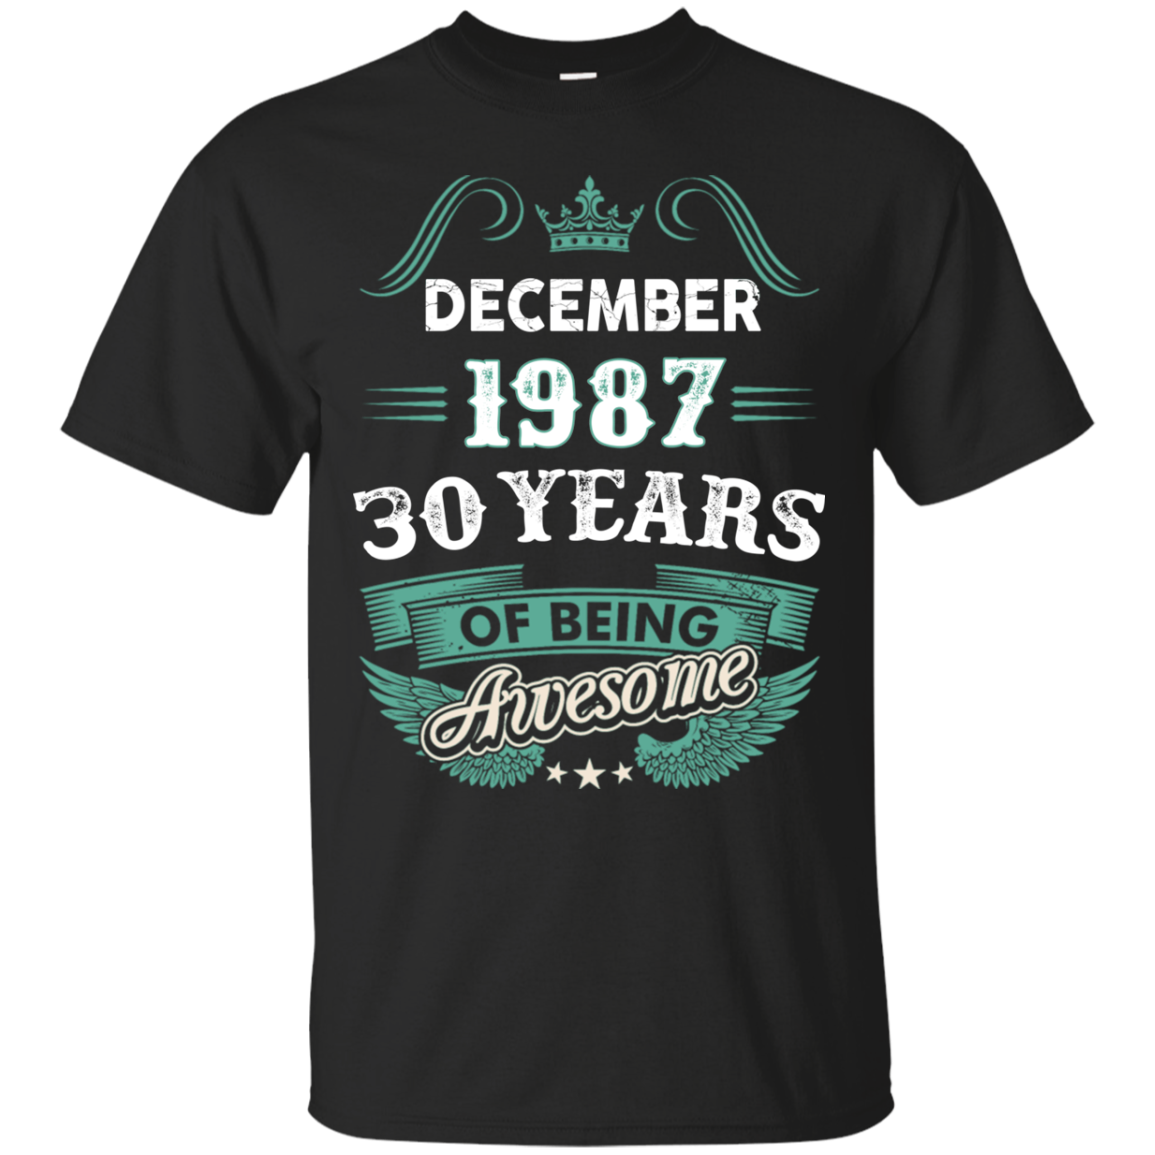 December 1987 30 Years of being Awesome t shirt Men